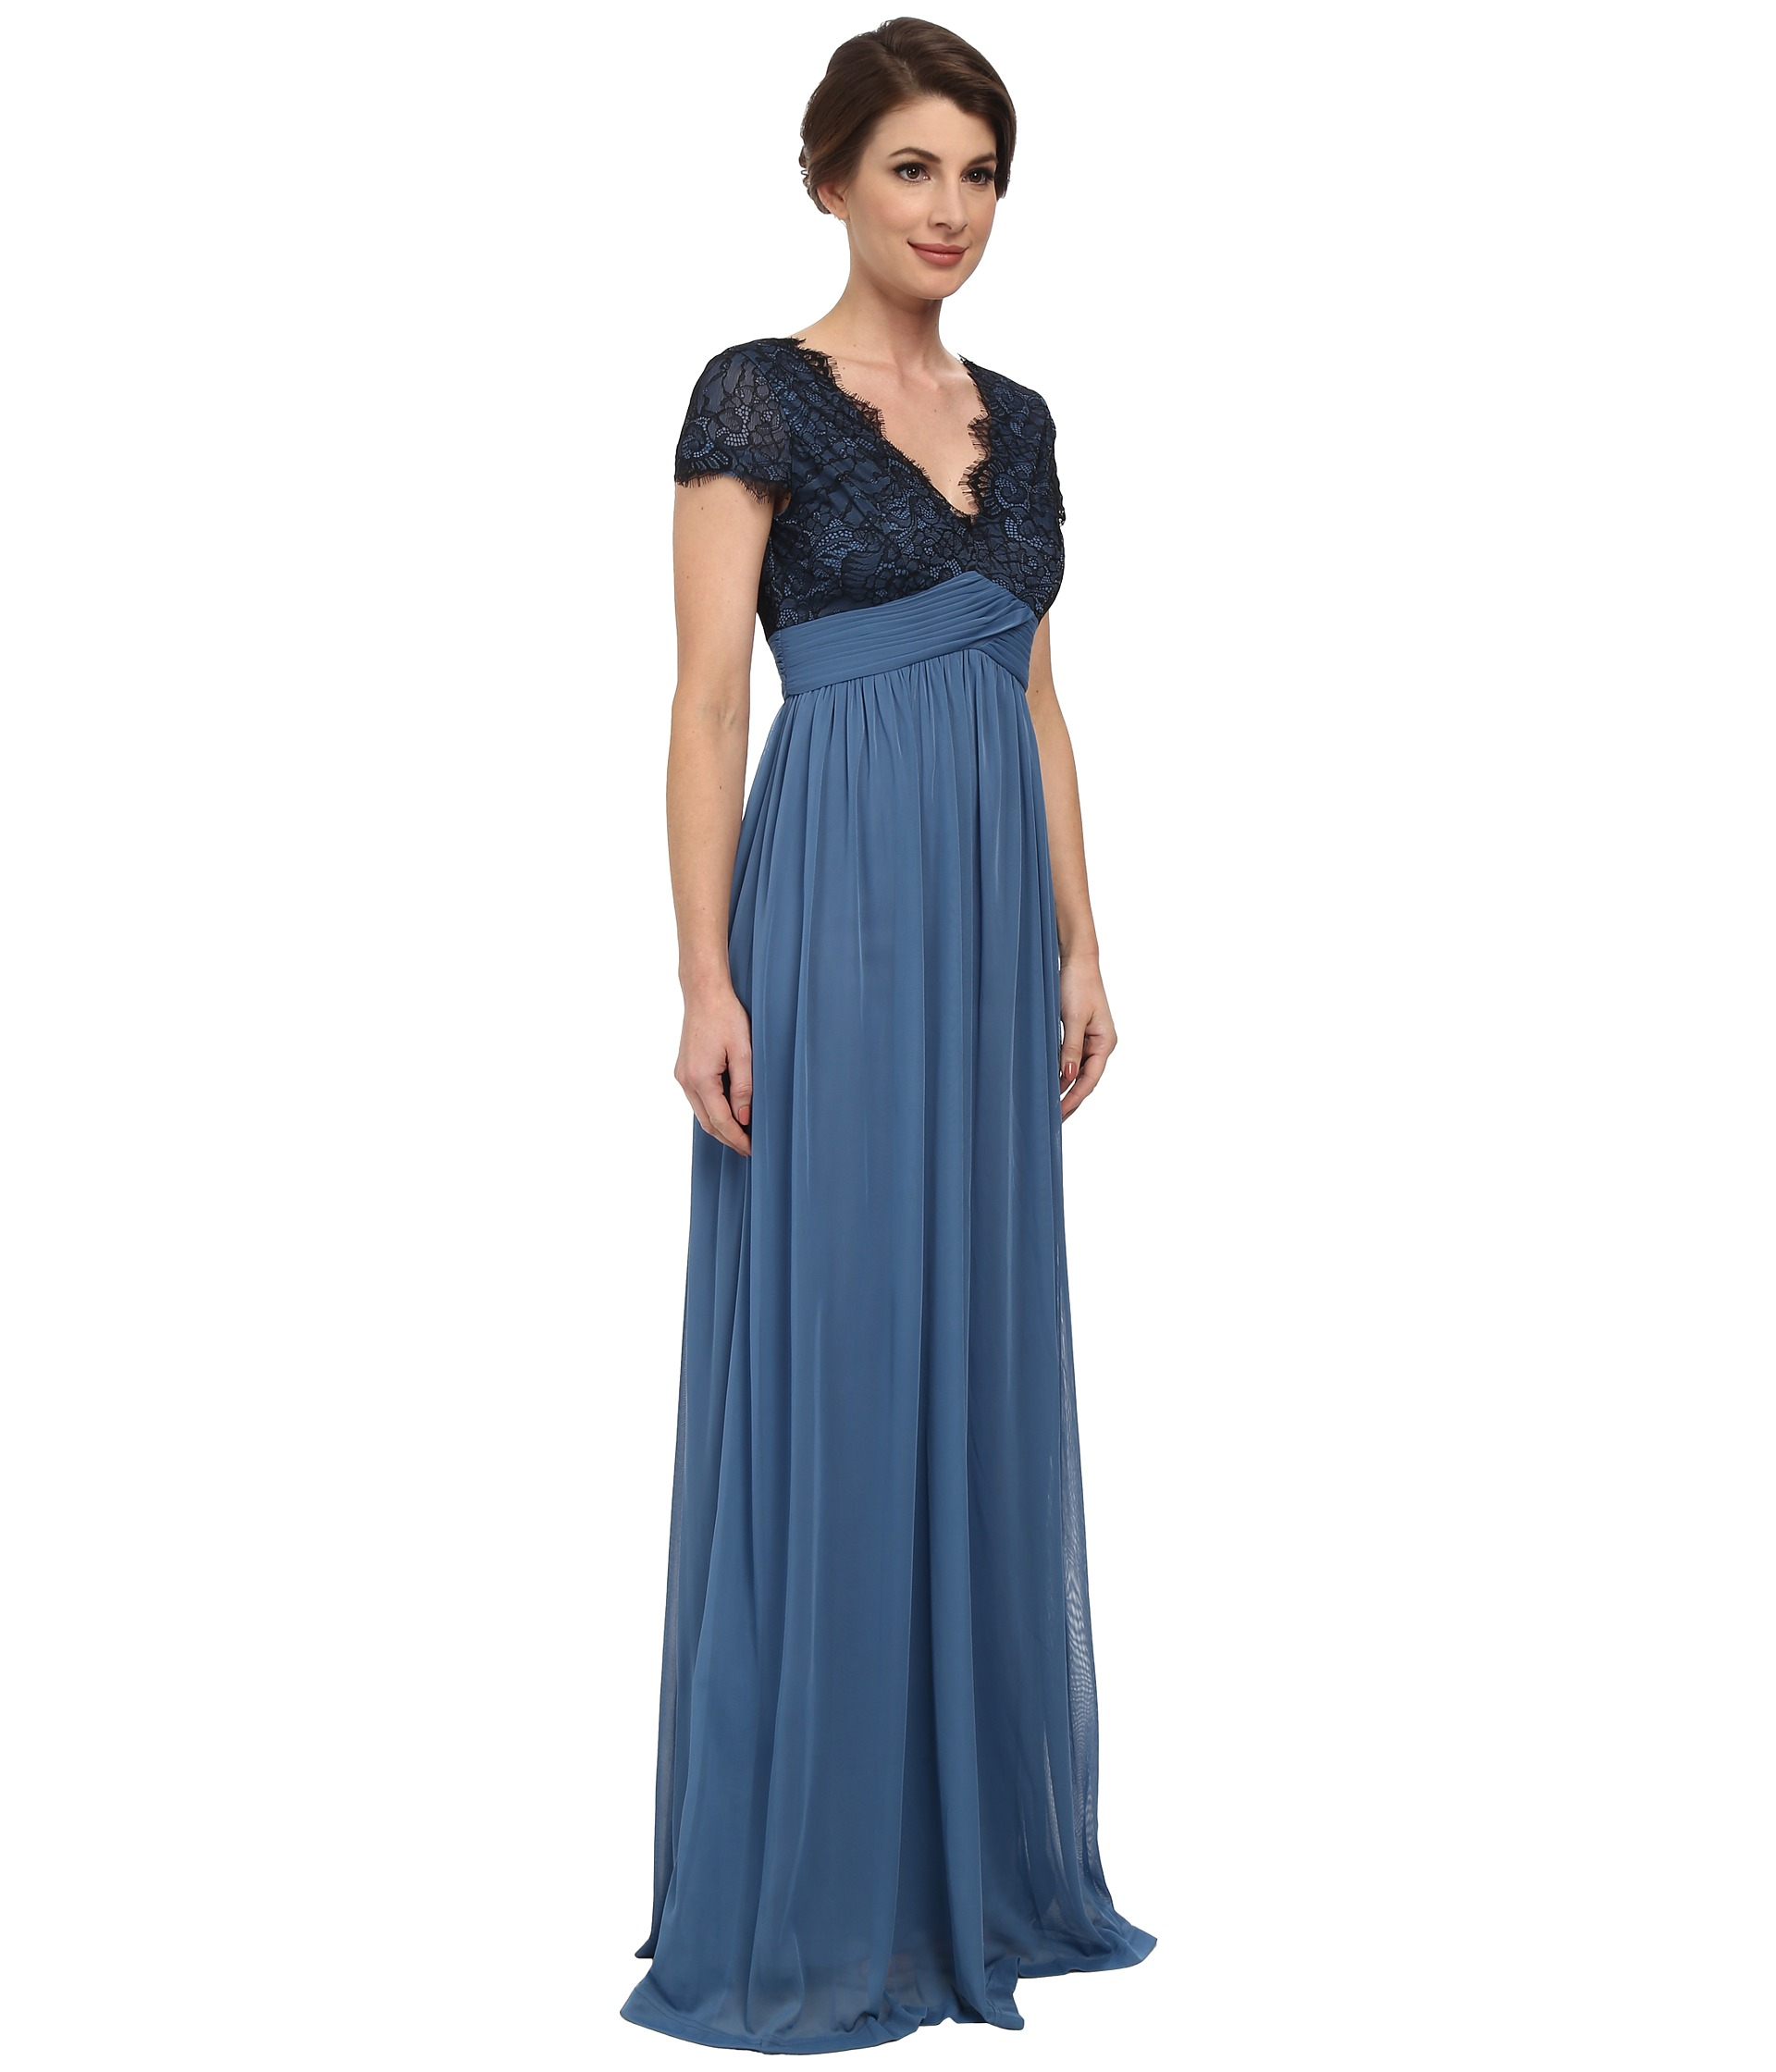 Lyst - Adrianna Papell Scalloped Lace Bodice W/ Full Skirt in Blue